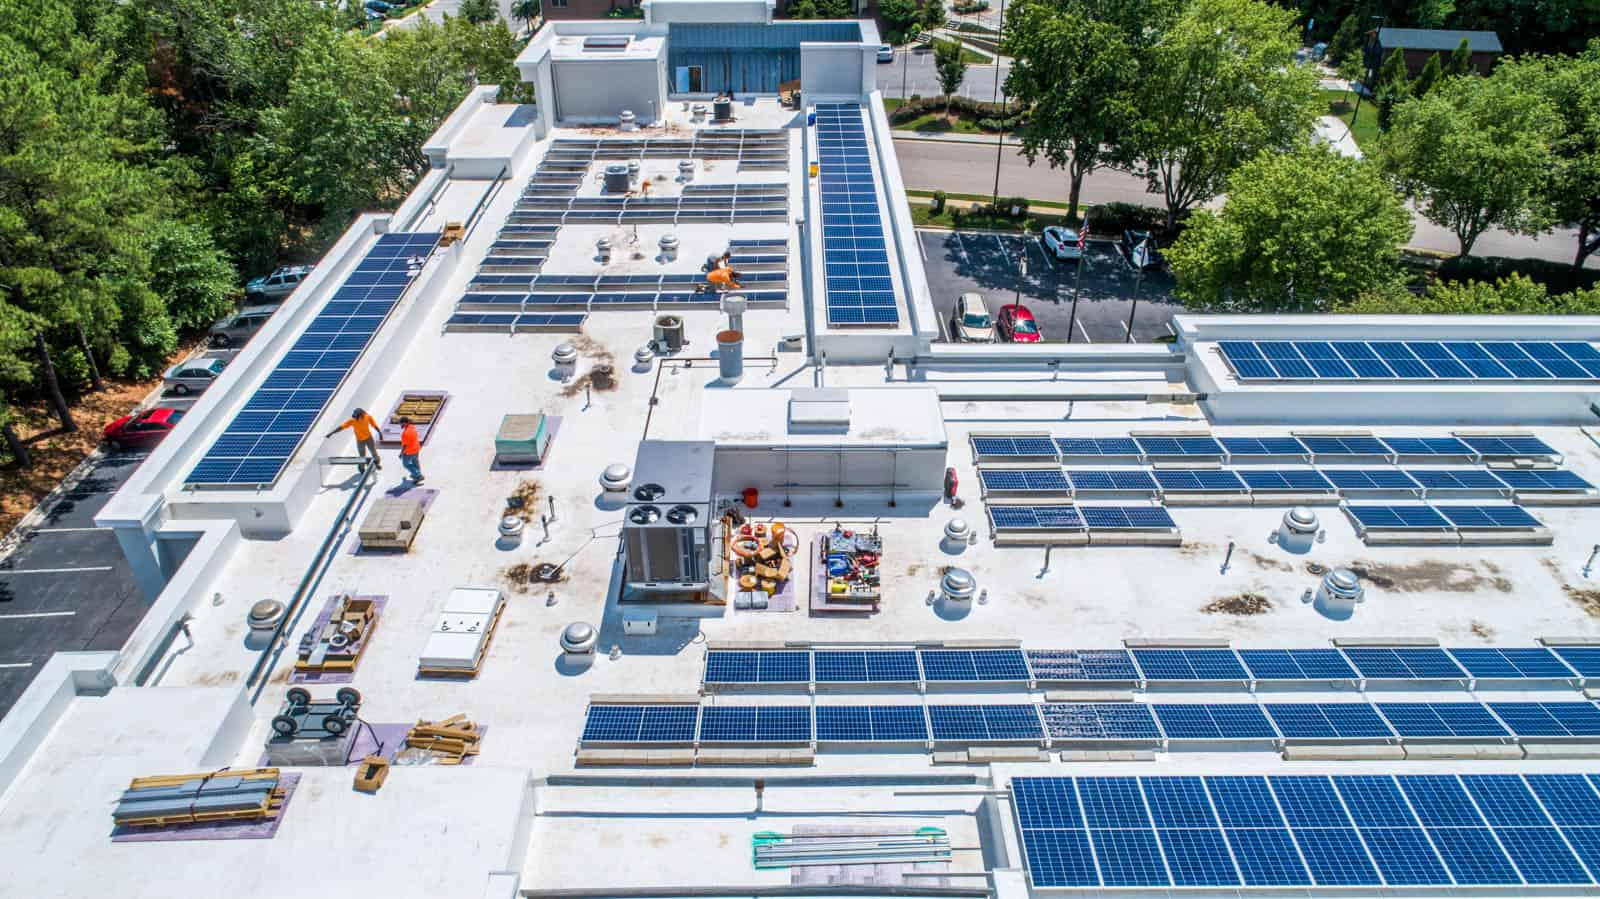 drone inspection photo of solar panel installation on rooftop